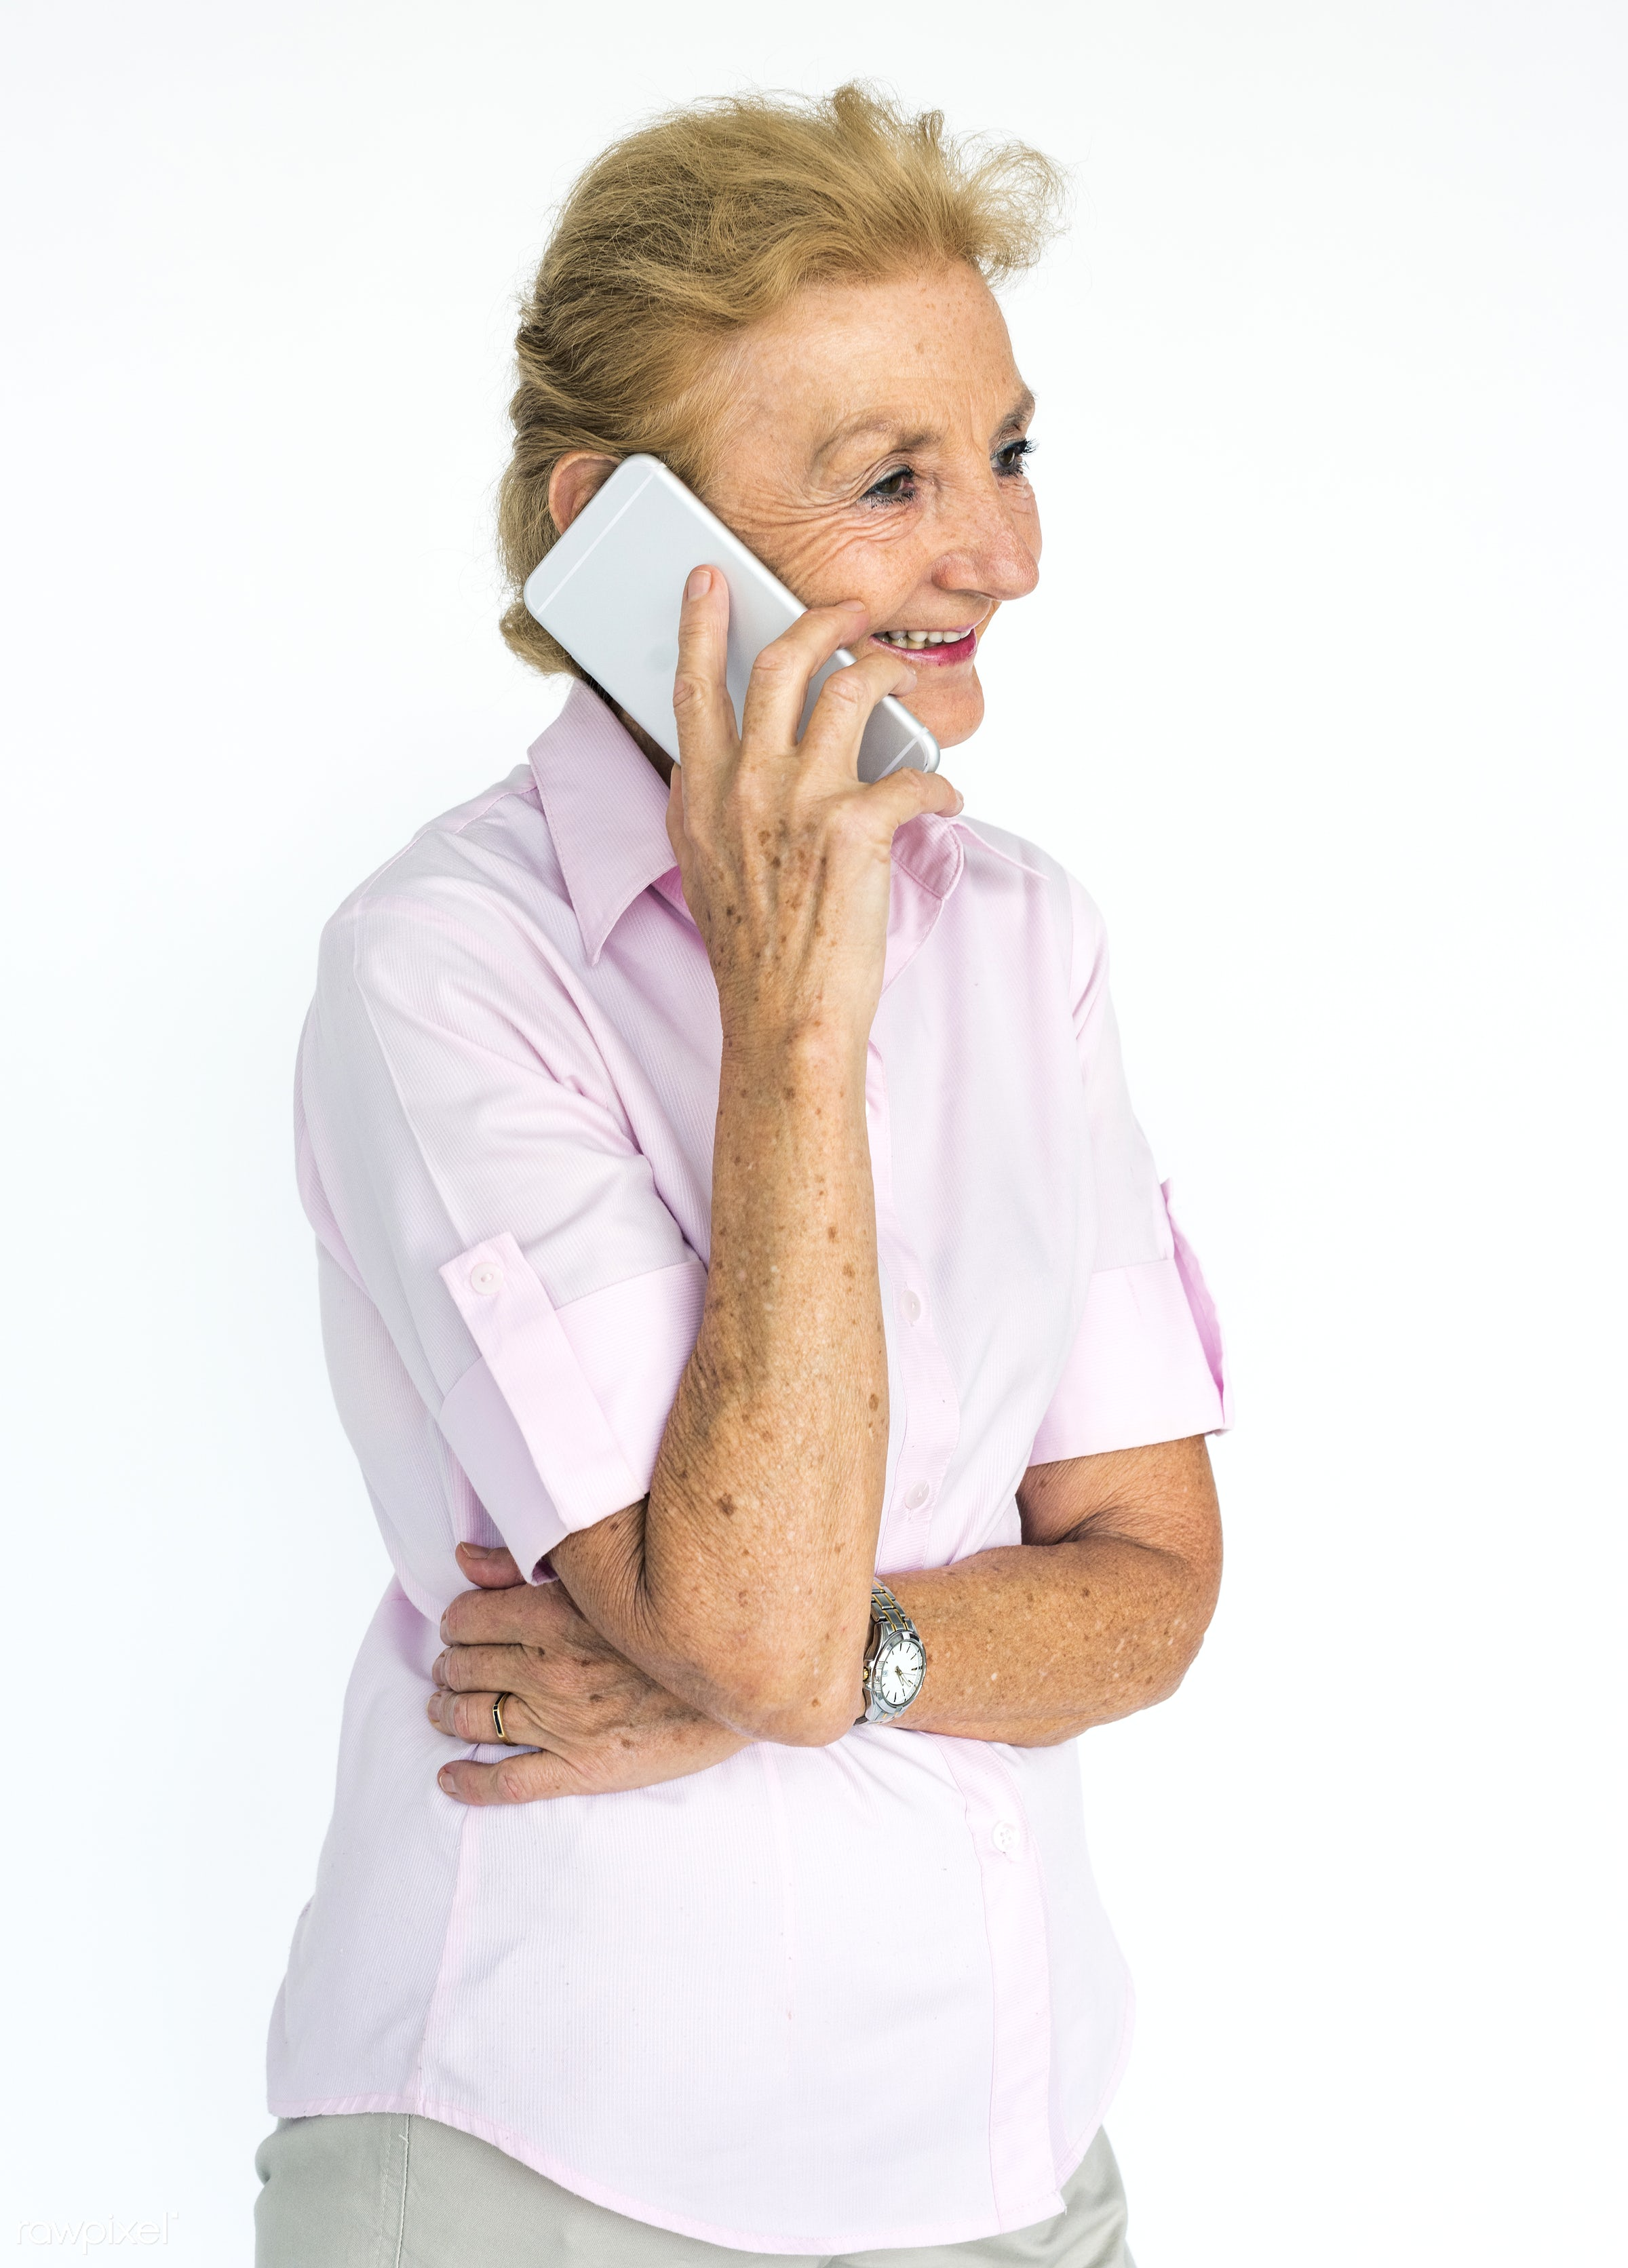 studio, expression, person, technology, people, woman, mobile phone, smile, cheerful, smiling, isolated, connection, white,...